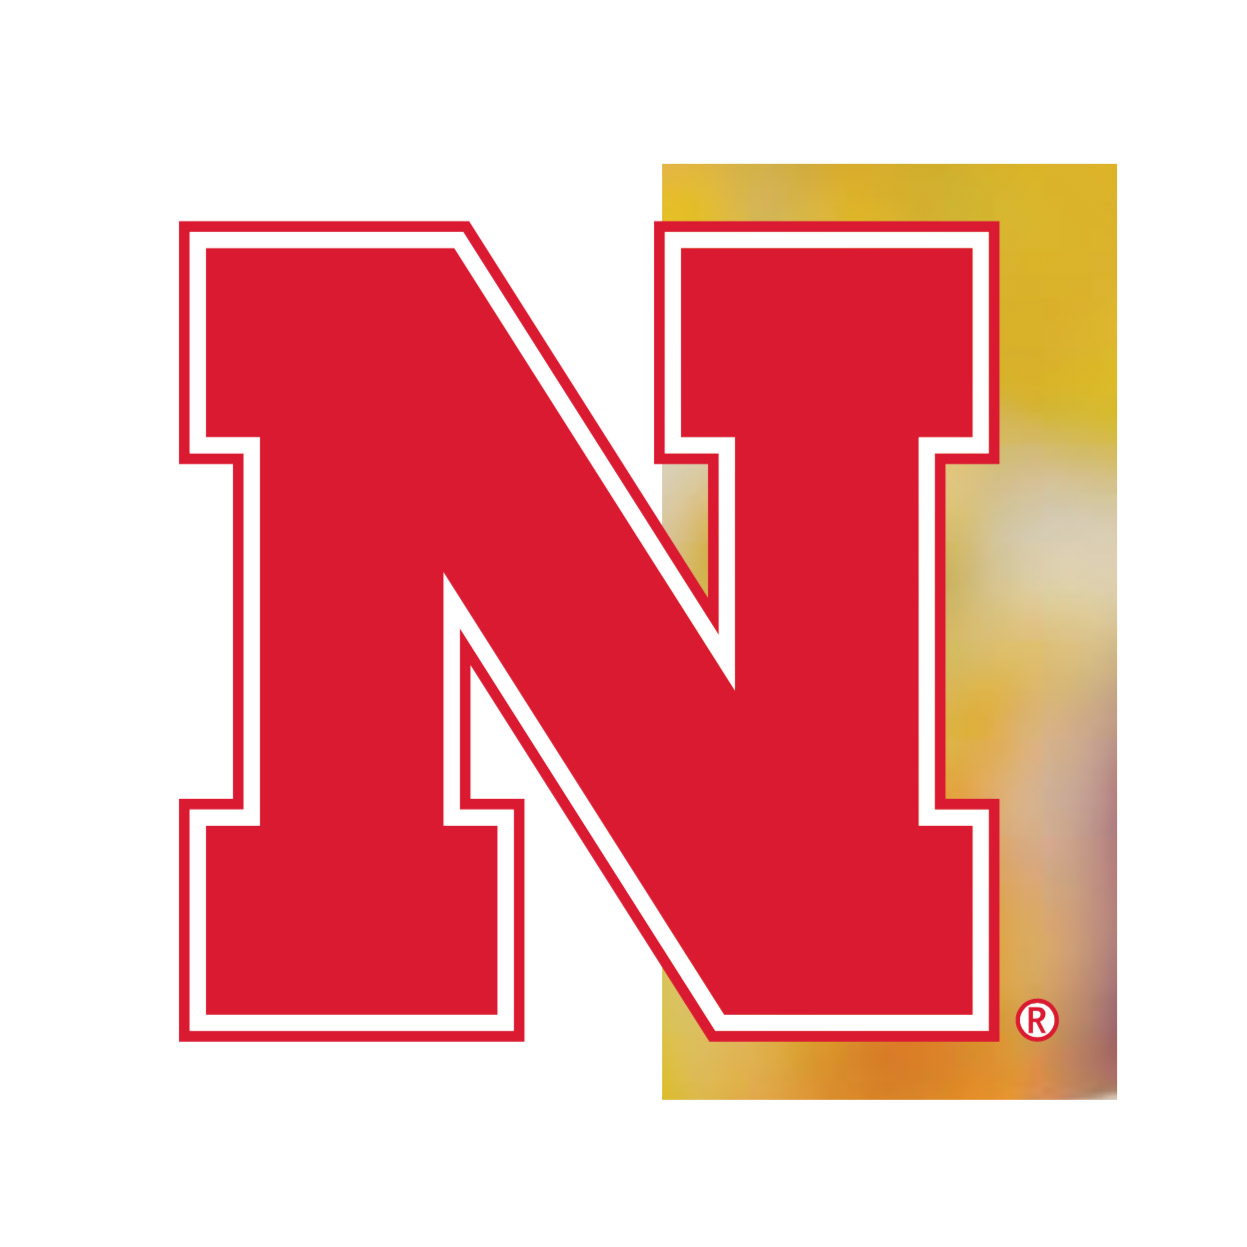 Nebraska N campus icon PMS 186CP